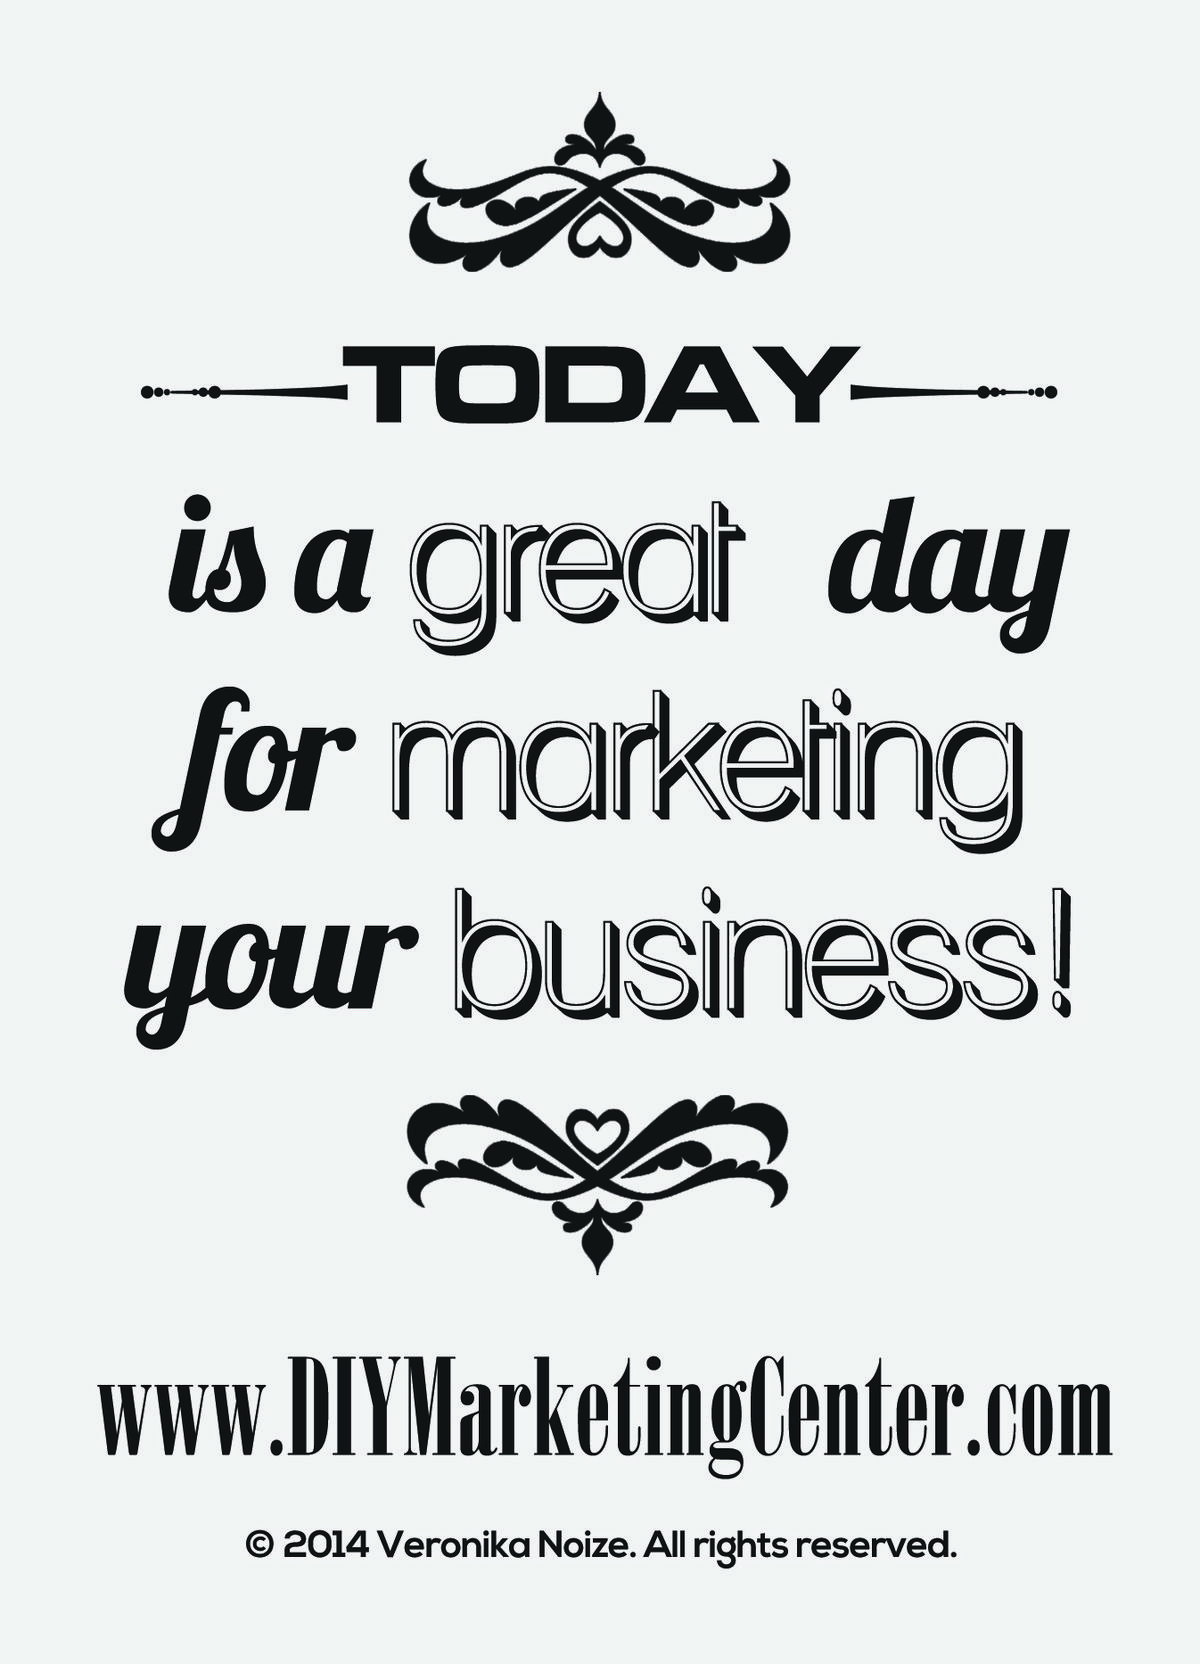 Its a great day for marketing!